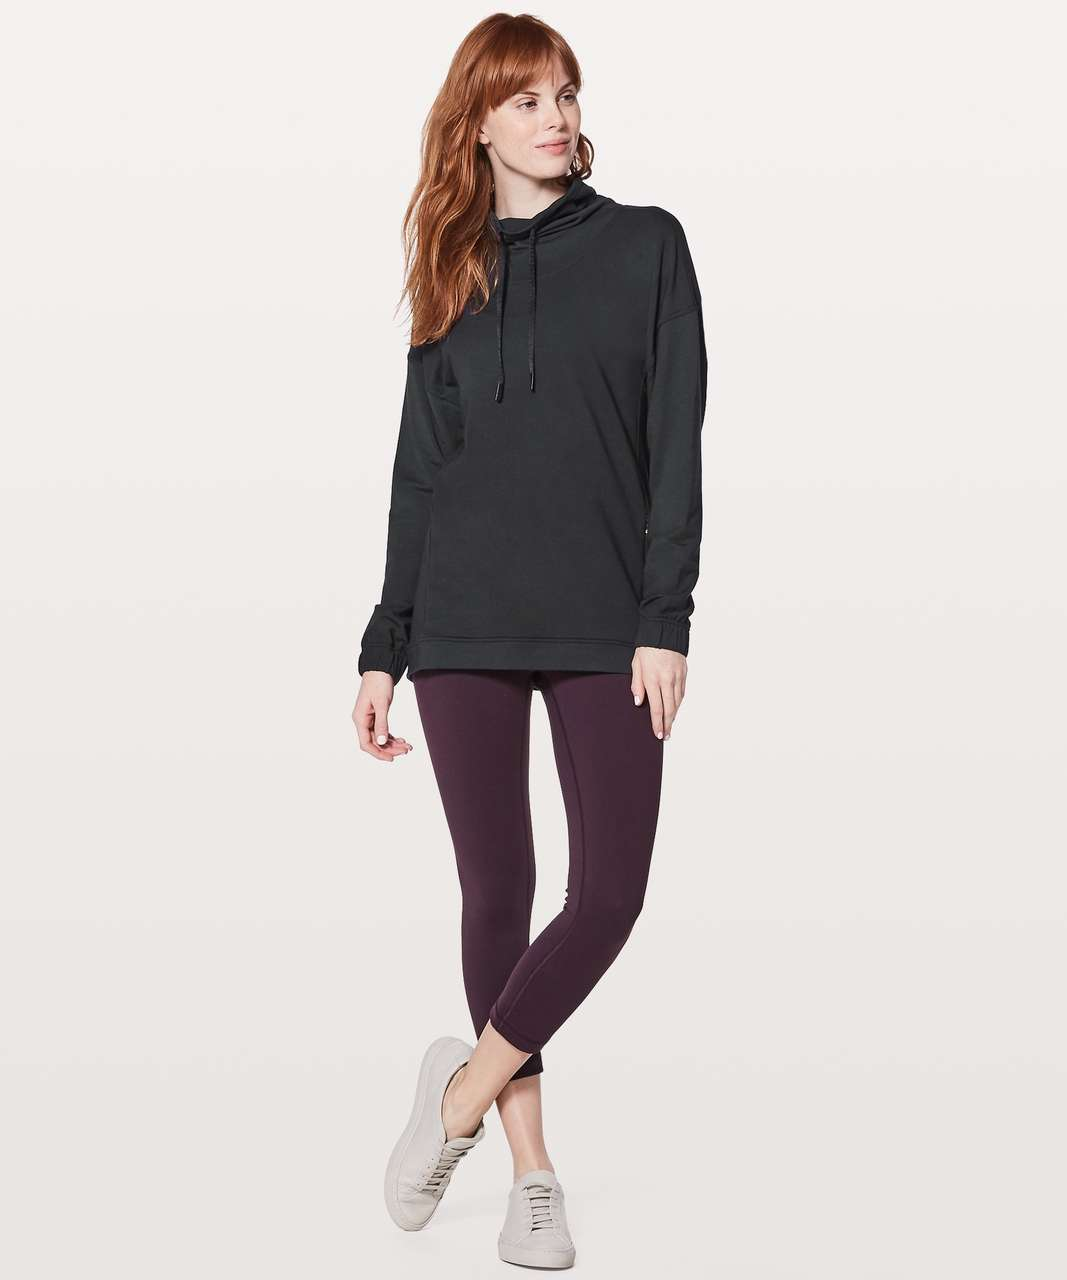 Lululemon Twisted & Tucked Long Sleeve - Black